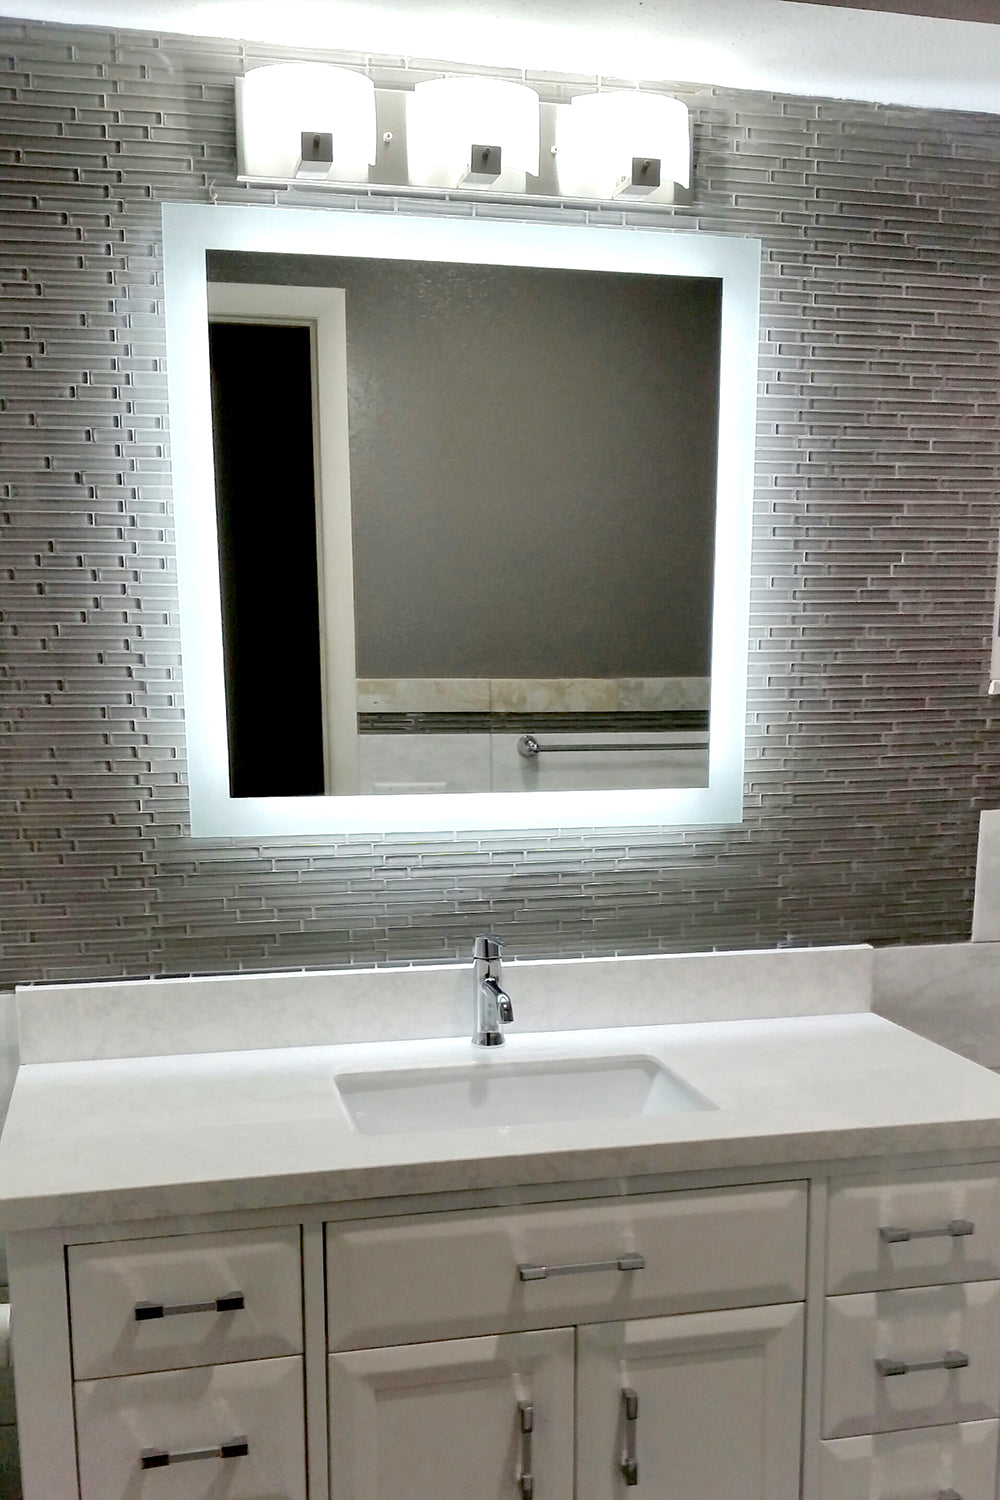 Side Lighted Led Bathroom Vanity Mirror 30 X 30 Square Mirrors Marble